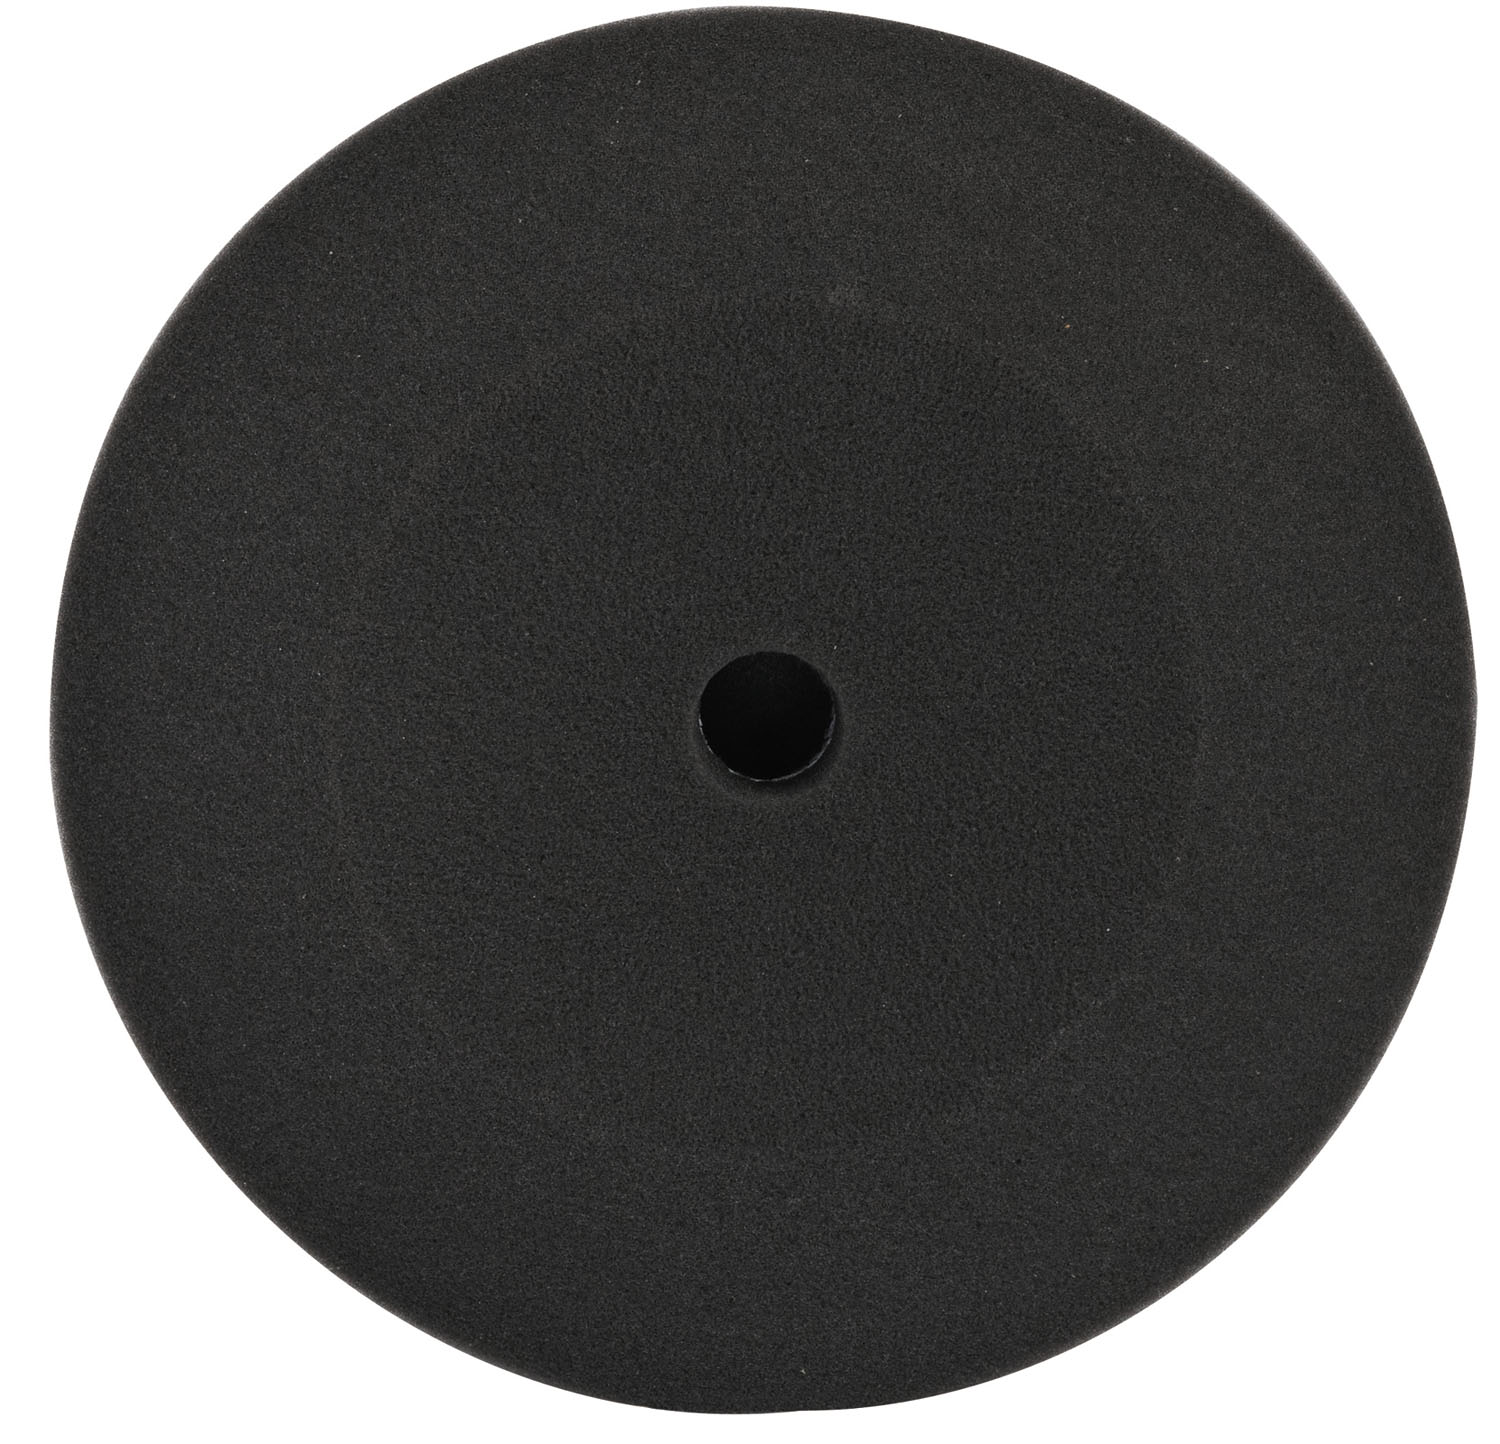 "Wizard 8"" x 1¾ Foam Finish Gray Pad WIZ-11206"